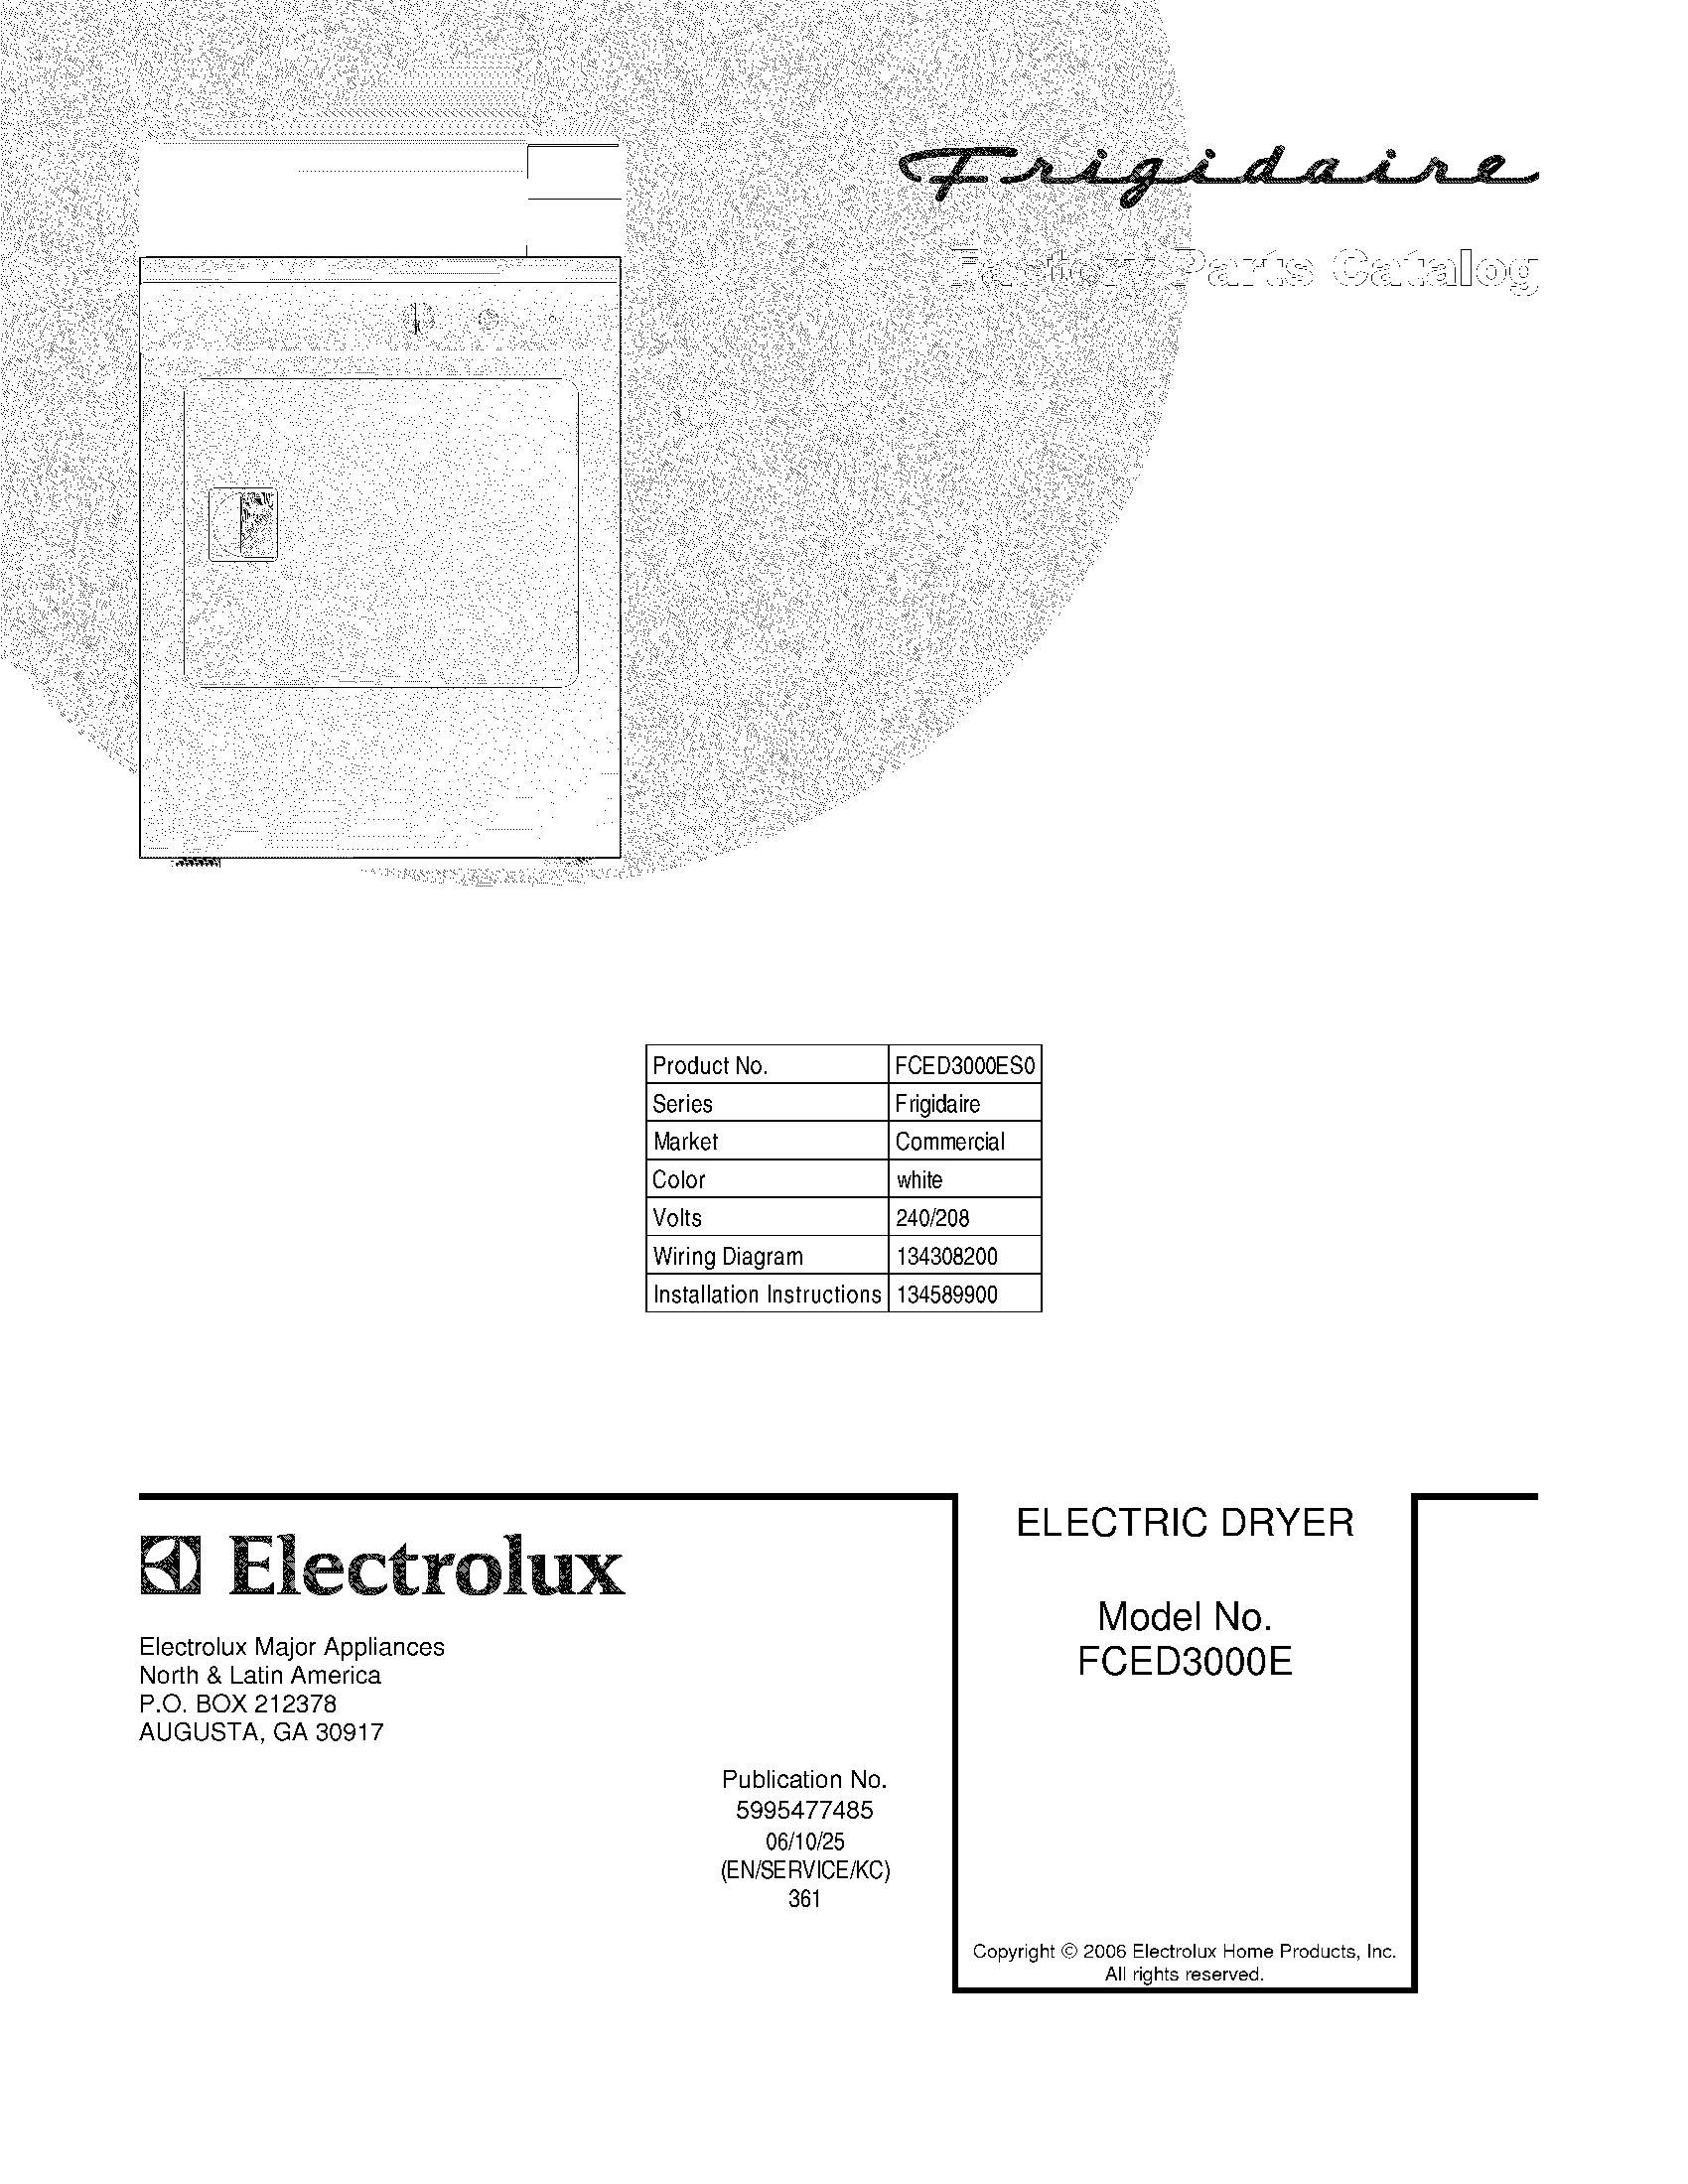 ElectroluxImg_19000101 20150717_00041943?width\=1000 wire diagram frigidaire coin op dryer ge dryer parts diagram  at mifinder.co